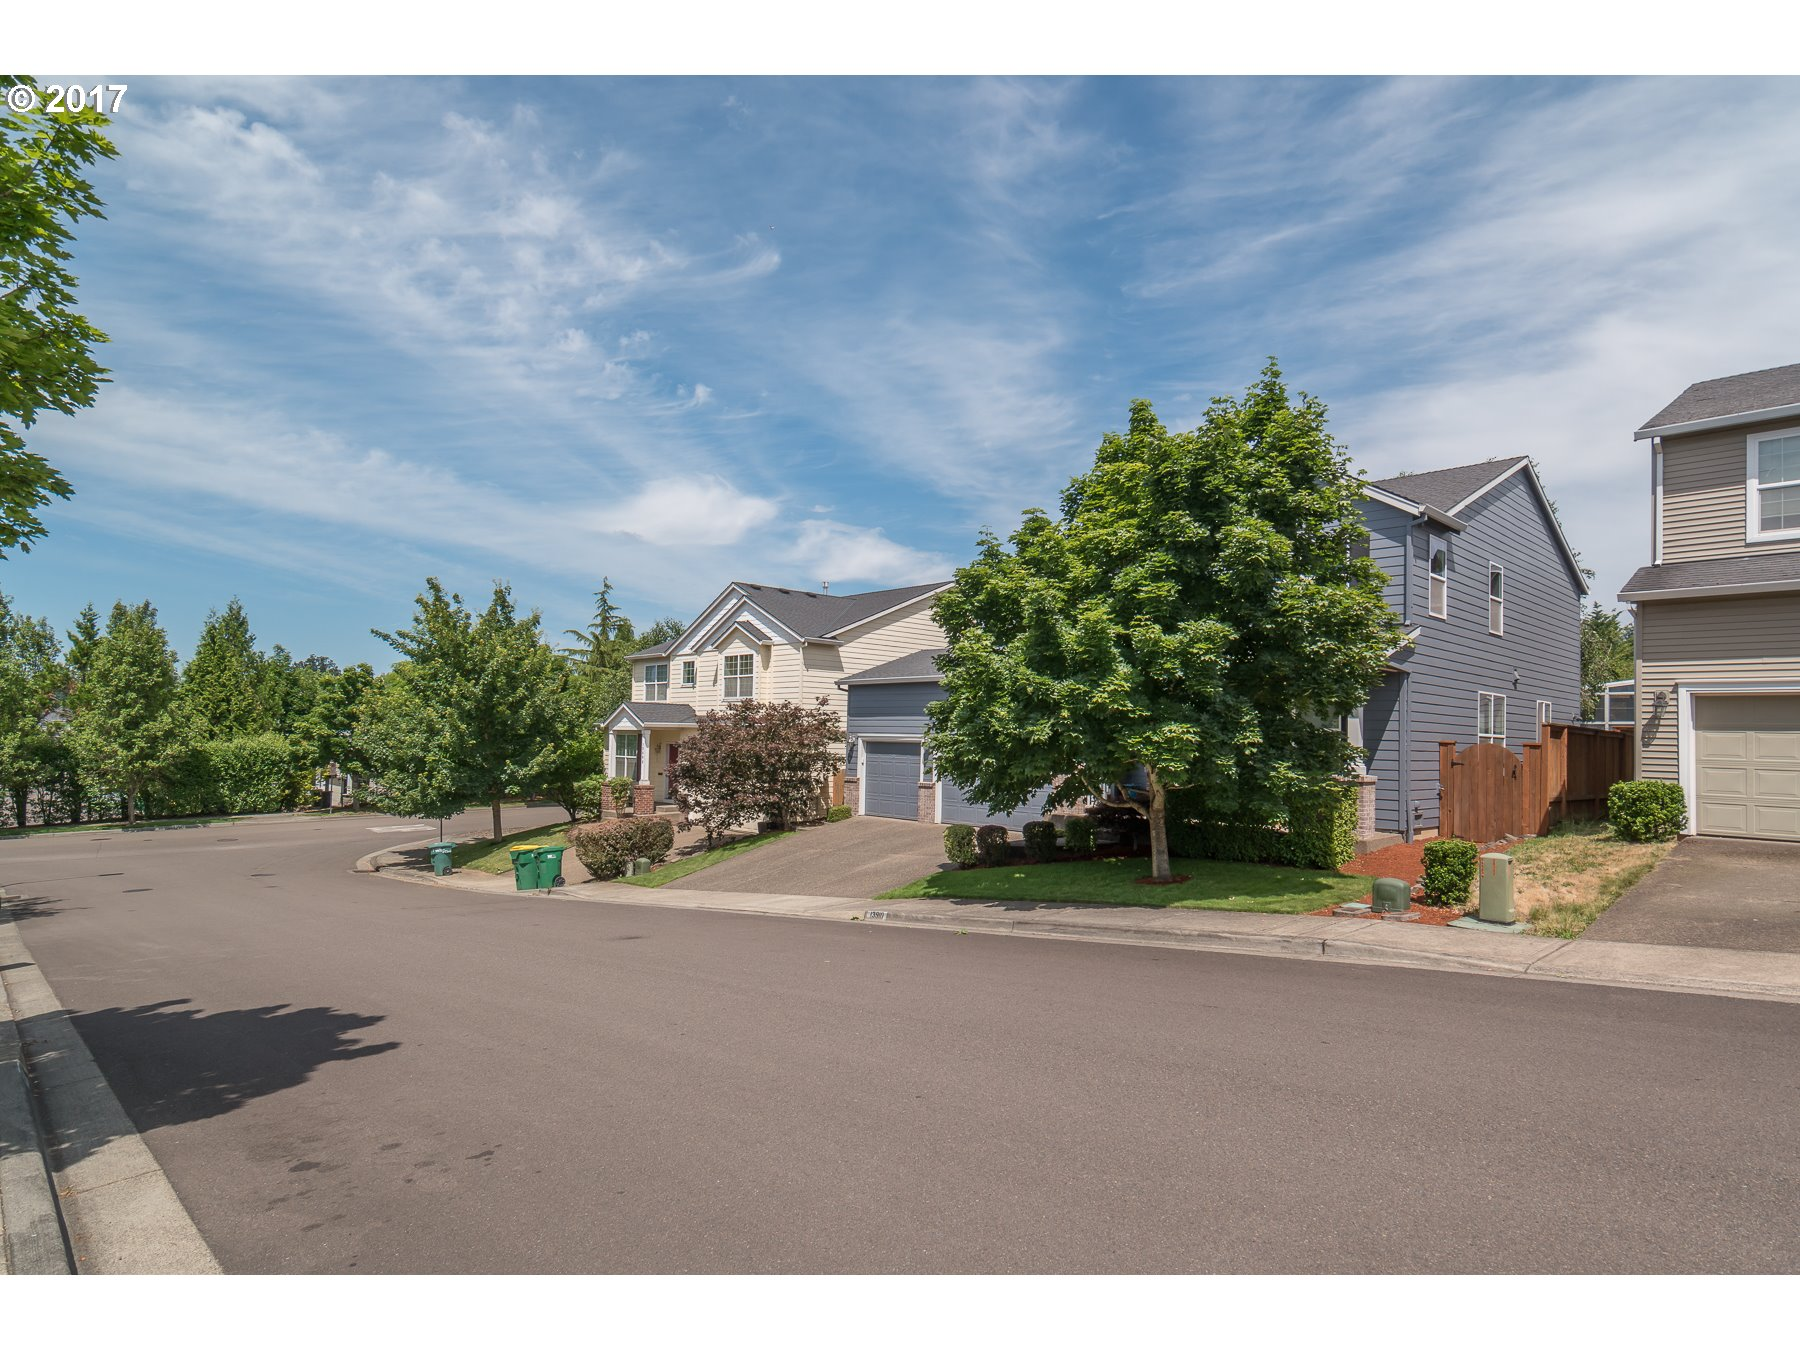 13910 SW 163RD TER Tigard, OR 97223 - MLS #: 17074249